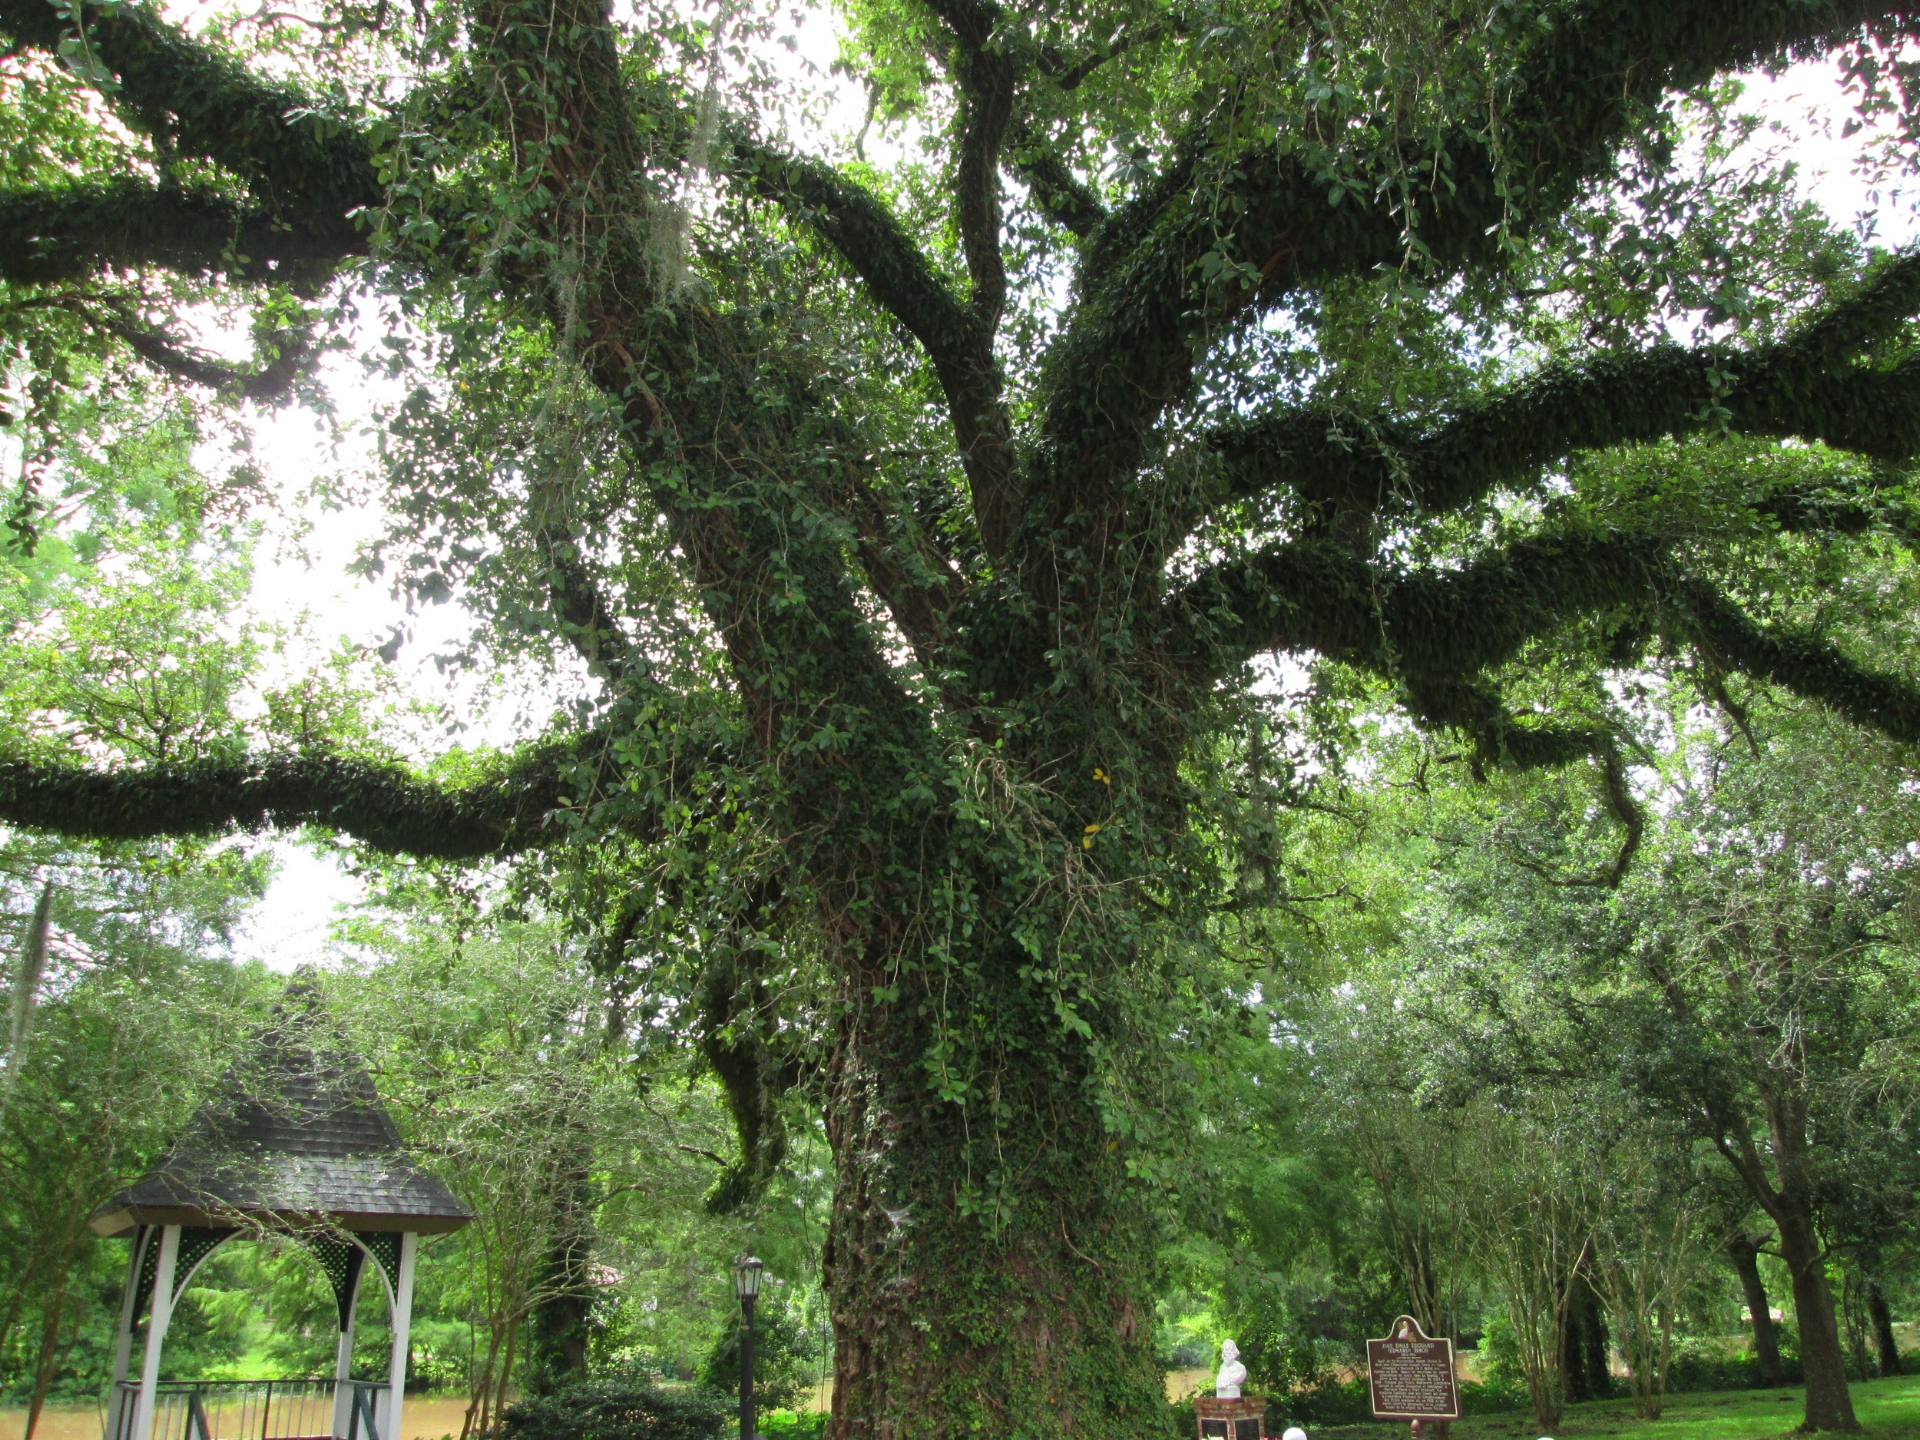 The Evangeline oak in St. Martinville